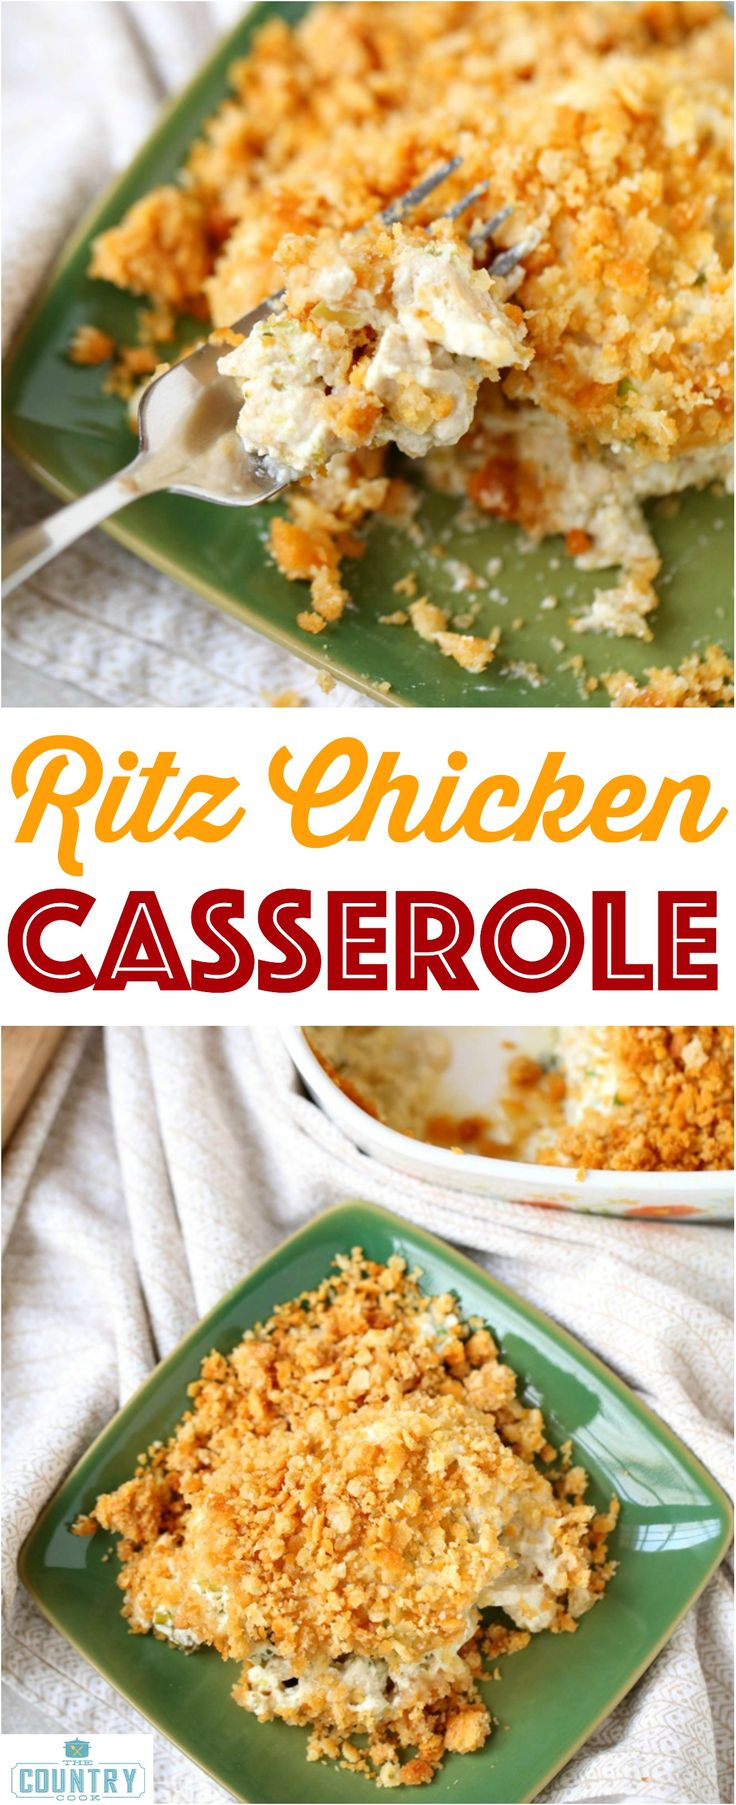 Ritz Chicken Casserole recipe from The Country Cook - only 6 ingredients . A huge family favorite - the best!